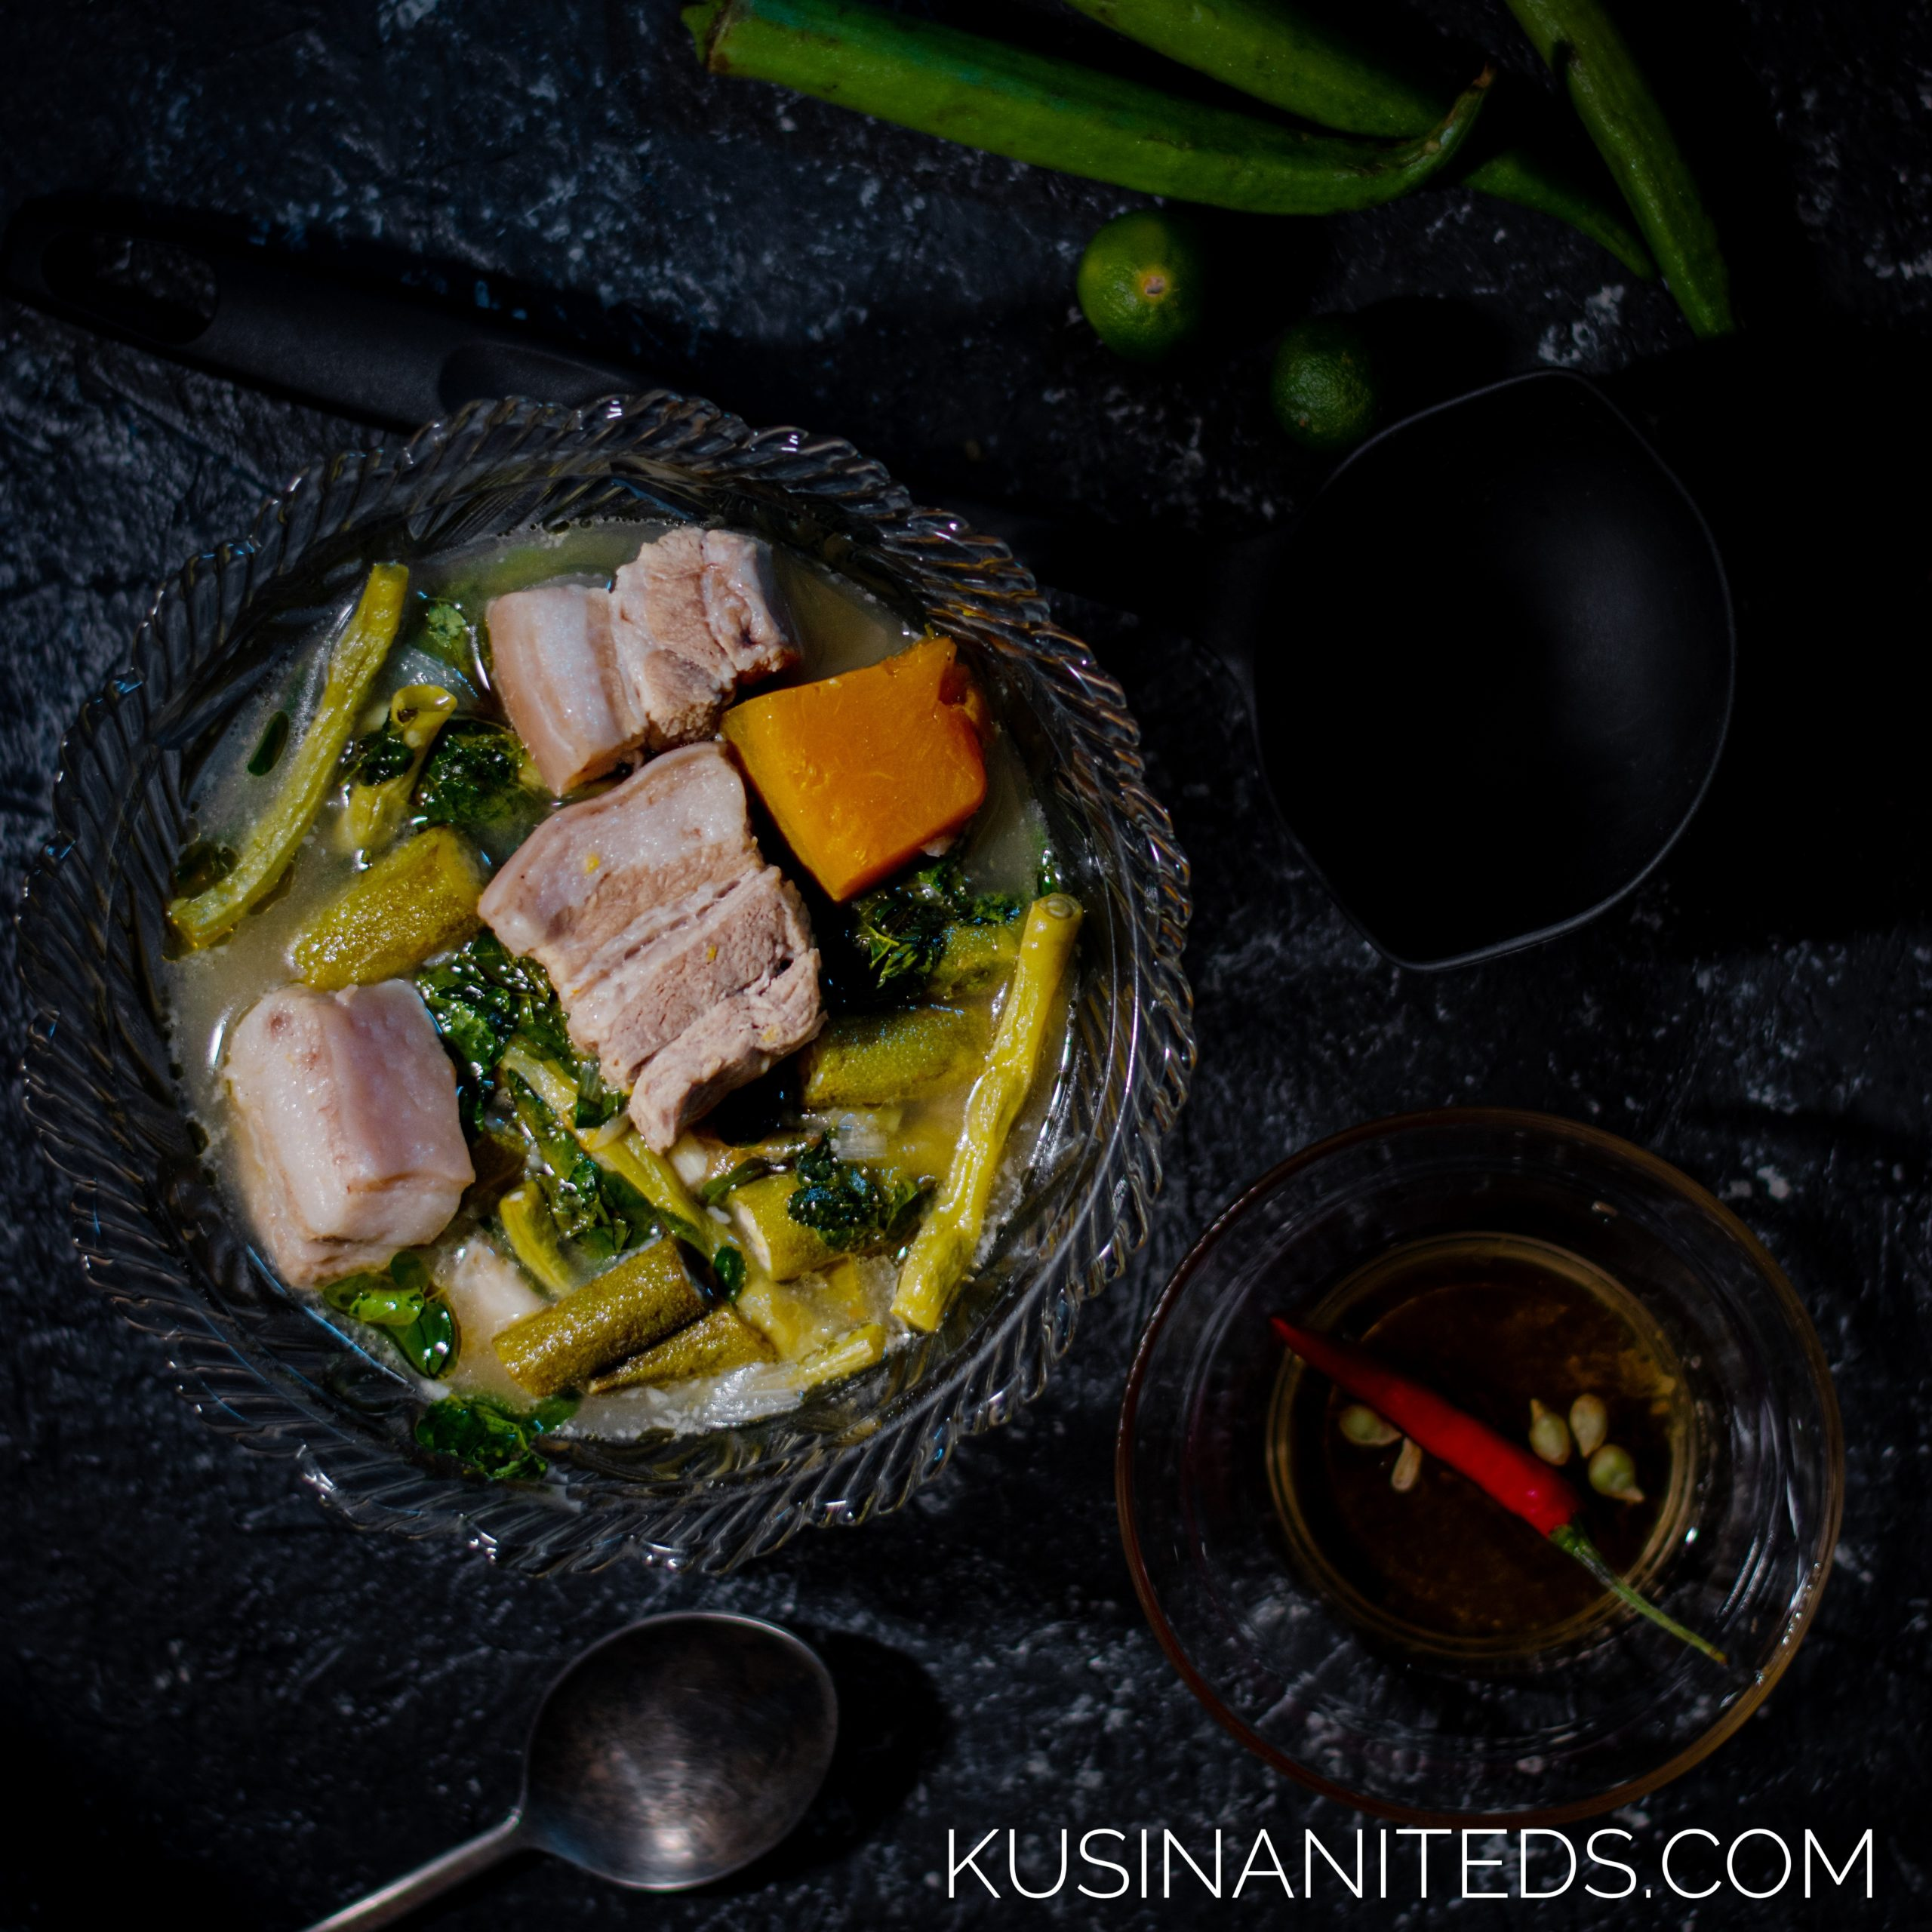 Pork Sinigang With Squash A Lockdown Food Recipe